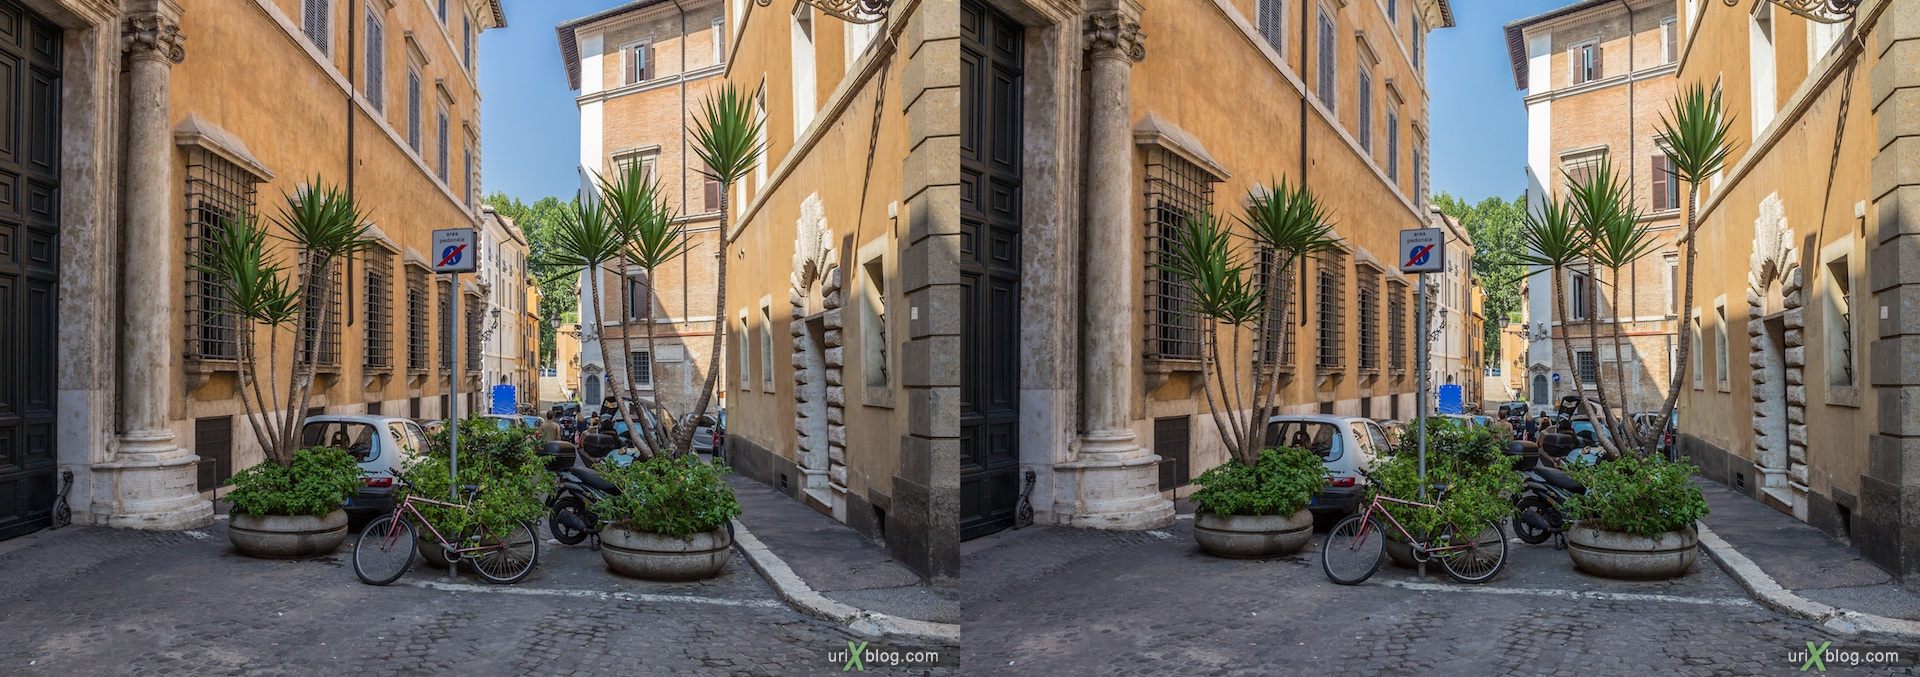 2012, via Lancellotti street, piazzetta di San Simeone square, 3D, stereo pair, cross-eyed, crossview, cross view stereo pair